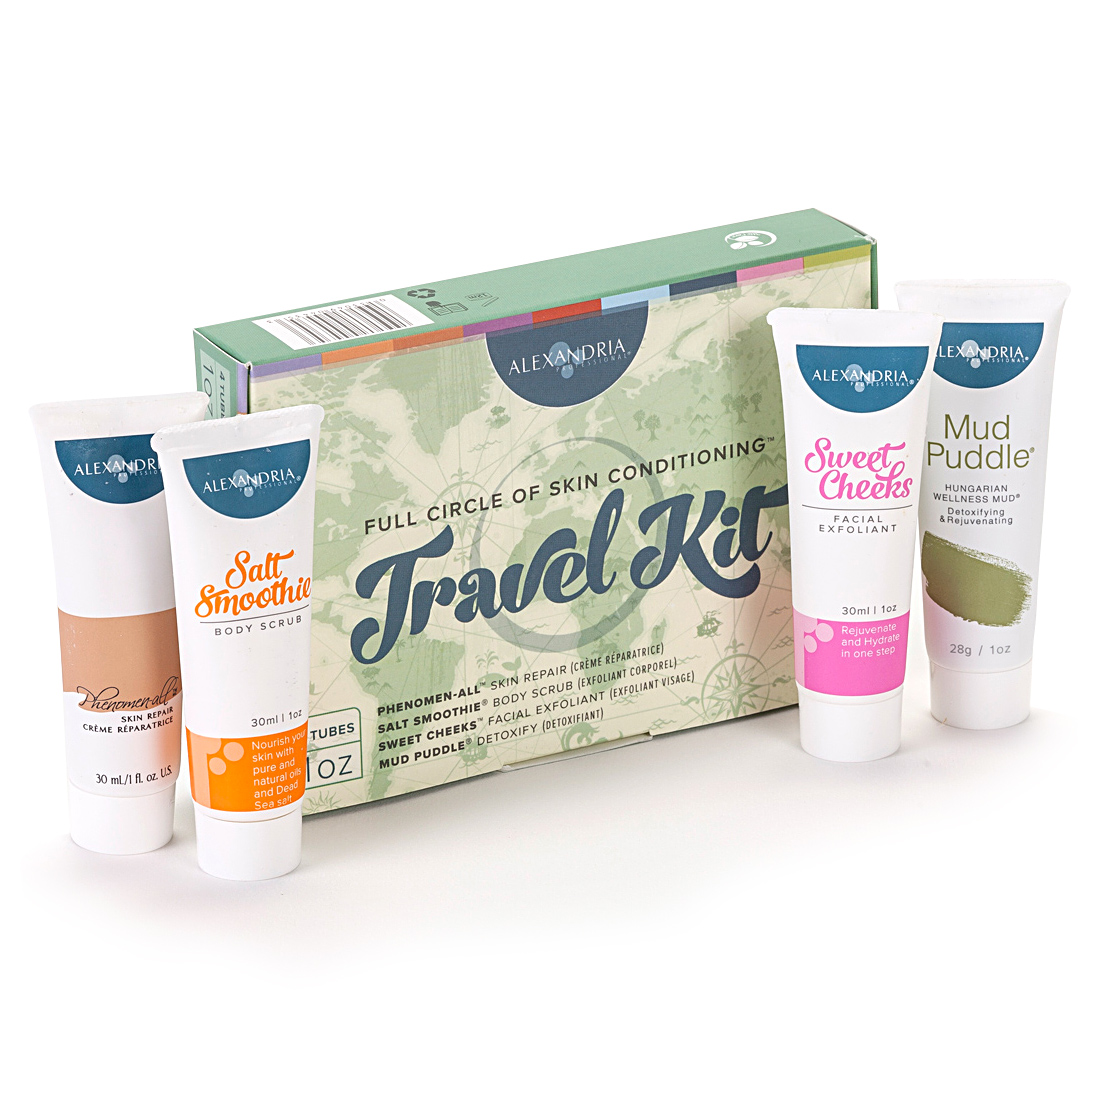 Full Circle Travel Kit - Alexandria Professional® 3dc5e974939